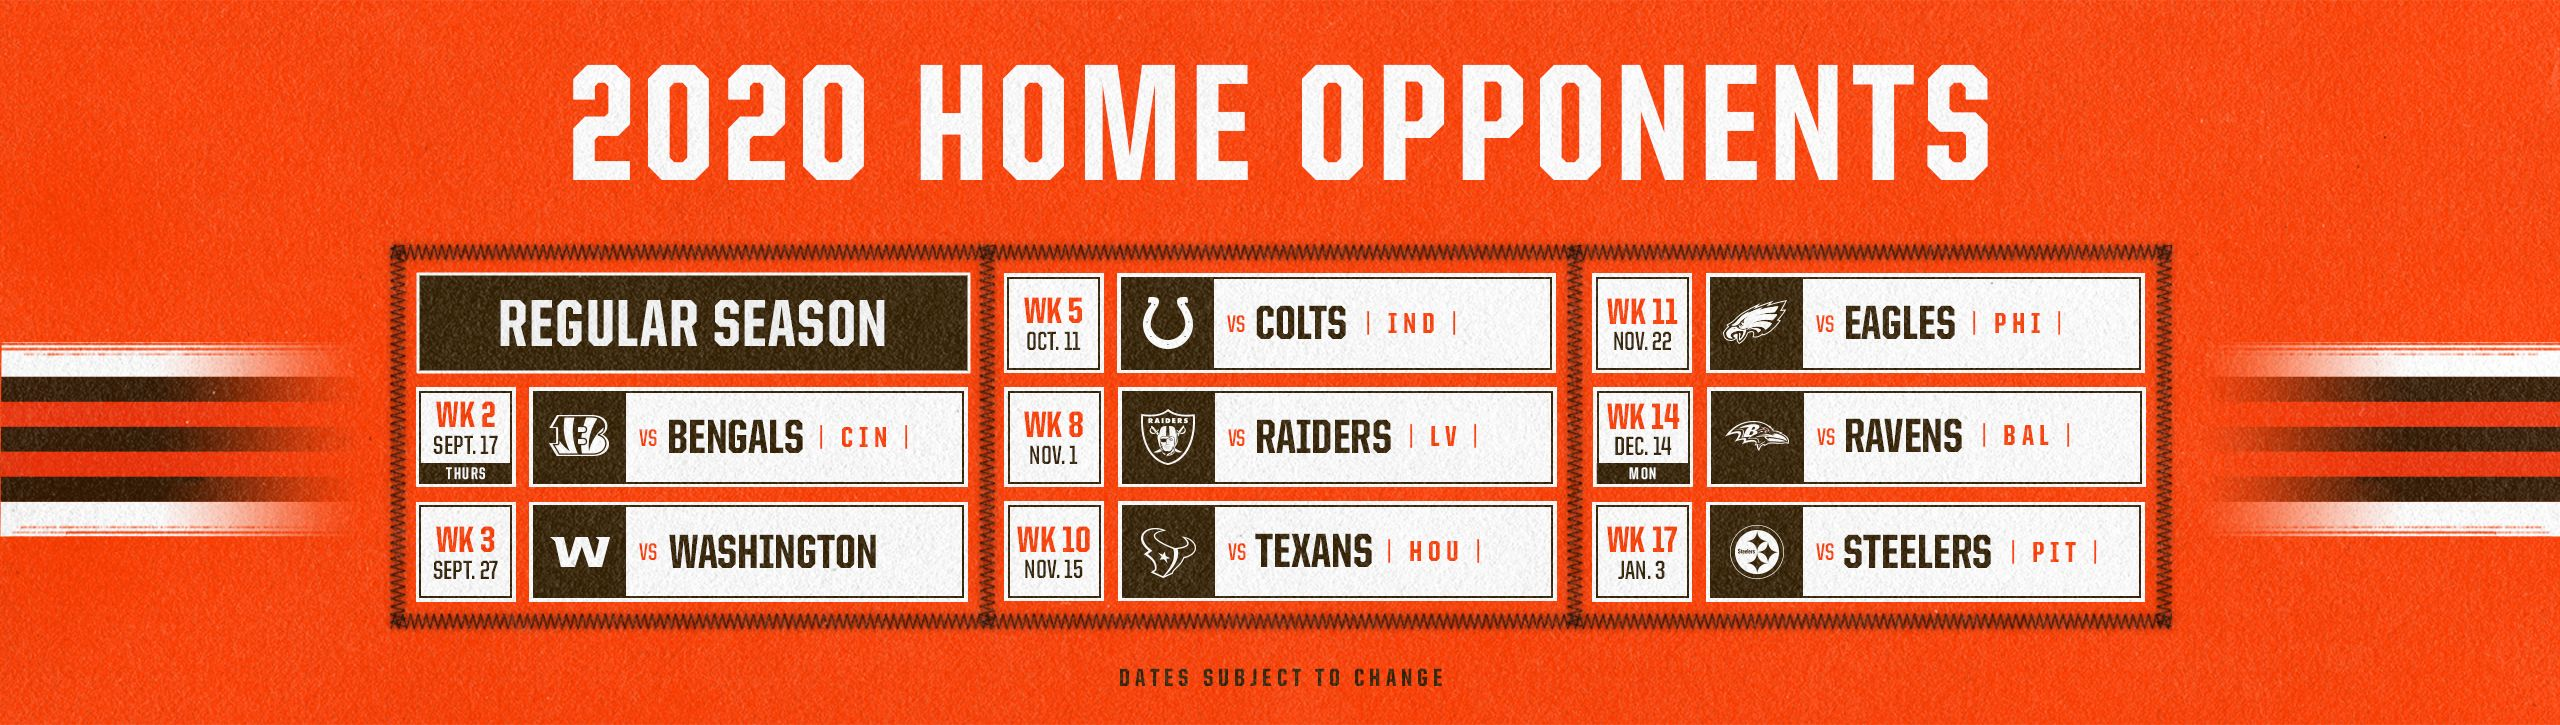 20_WEB_2020 OPPONENTS_TICKETING WEB PAGE_NO PRESEASON_2560x725(1)